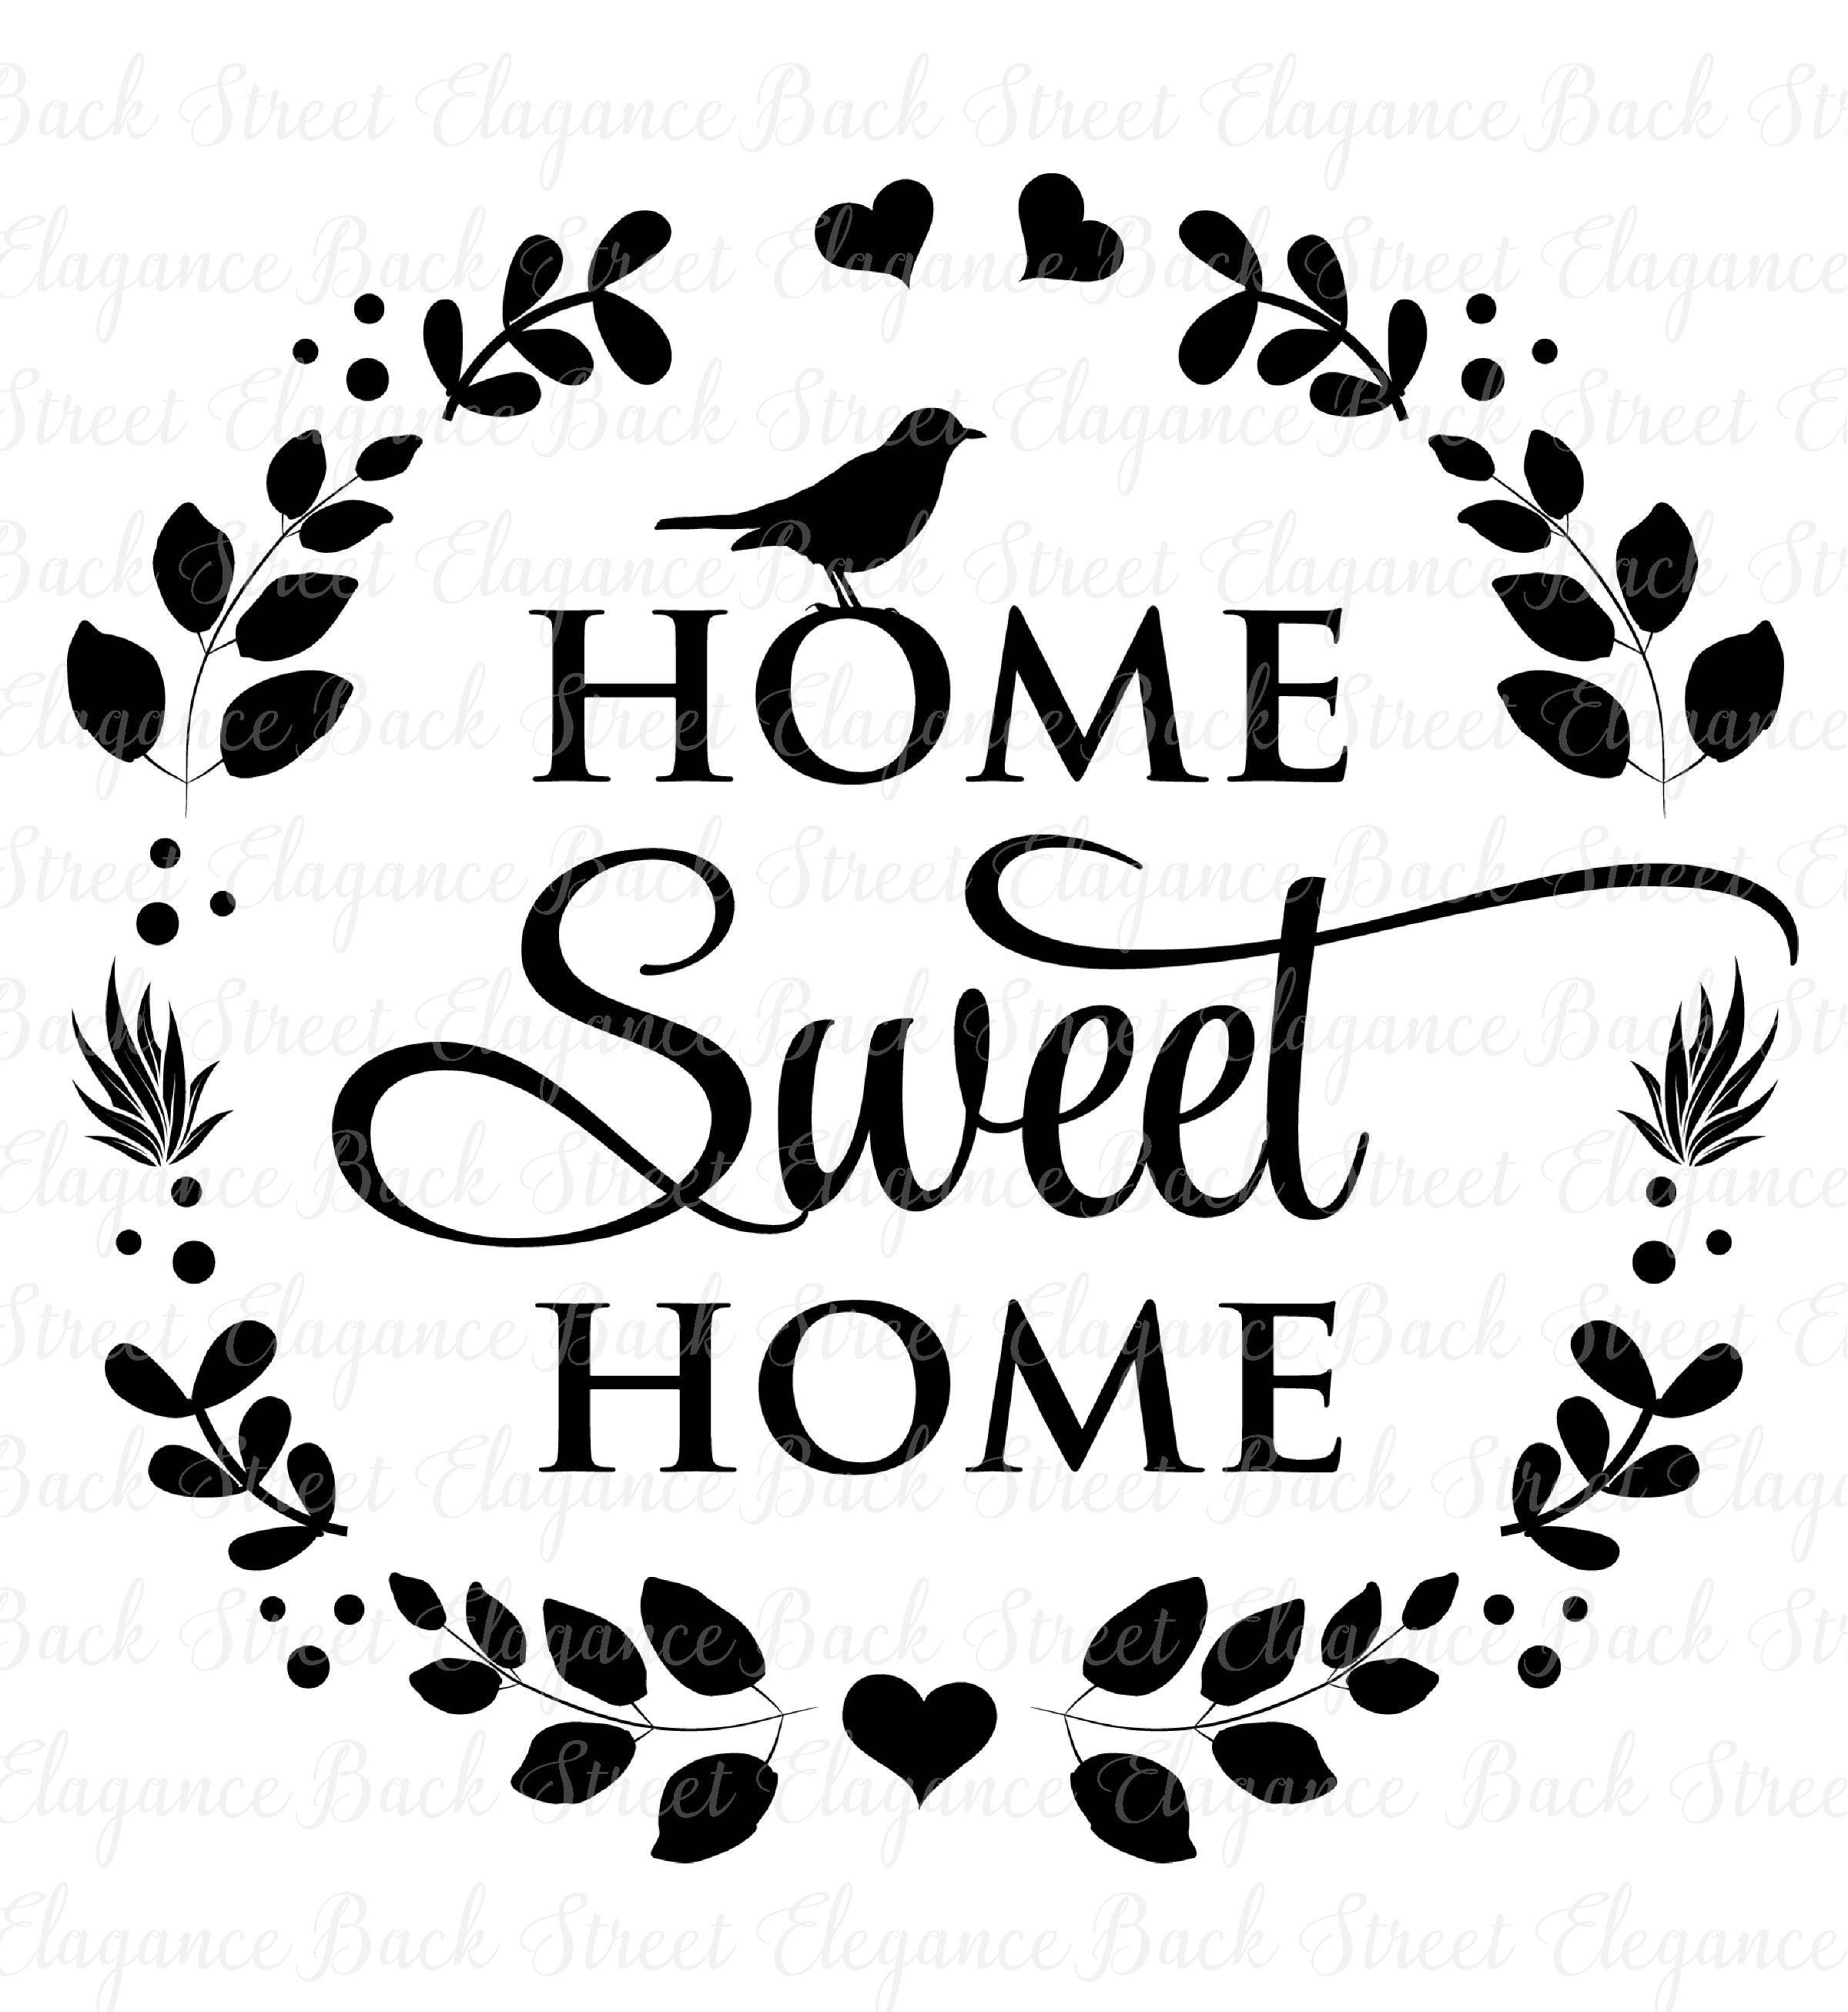 Home sweet home clipart white svg black and white download Home Sweet Home Png & Free Home Sweet Home.png Transparent Images ... svg black and white download